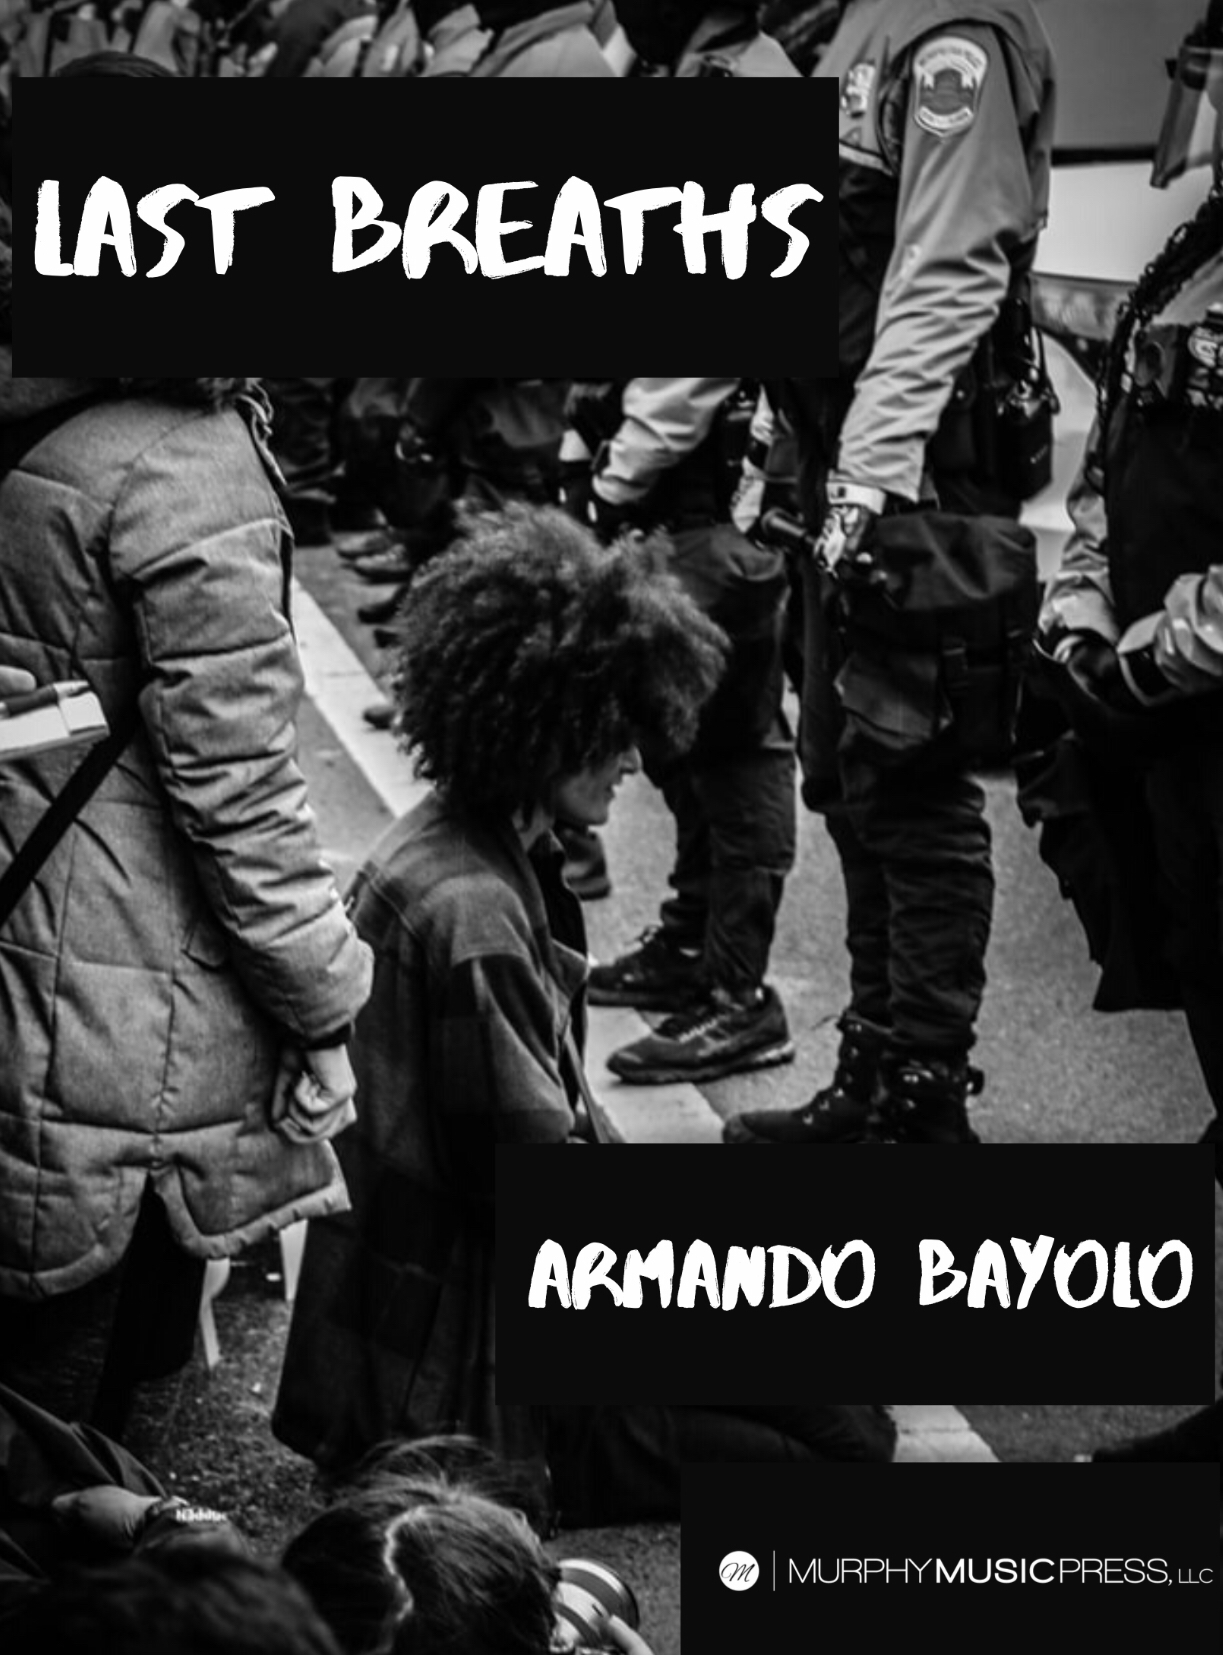 Last Breaths by Armando Bayolo